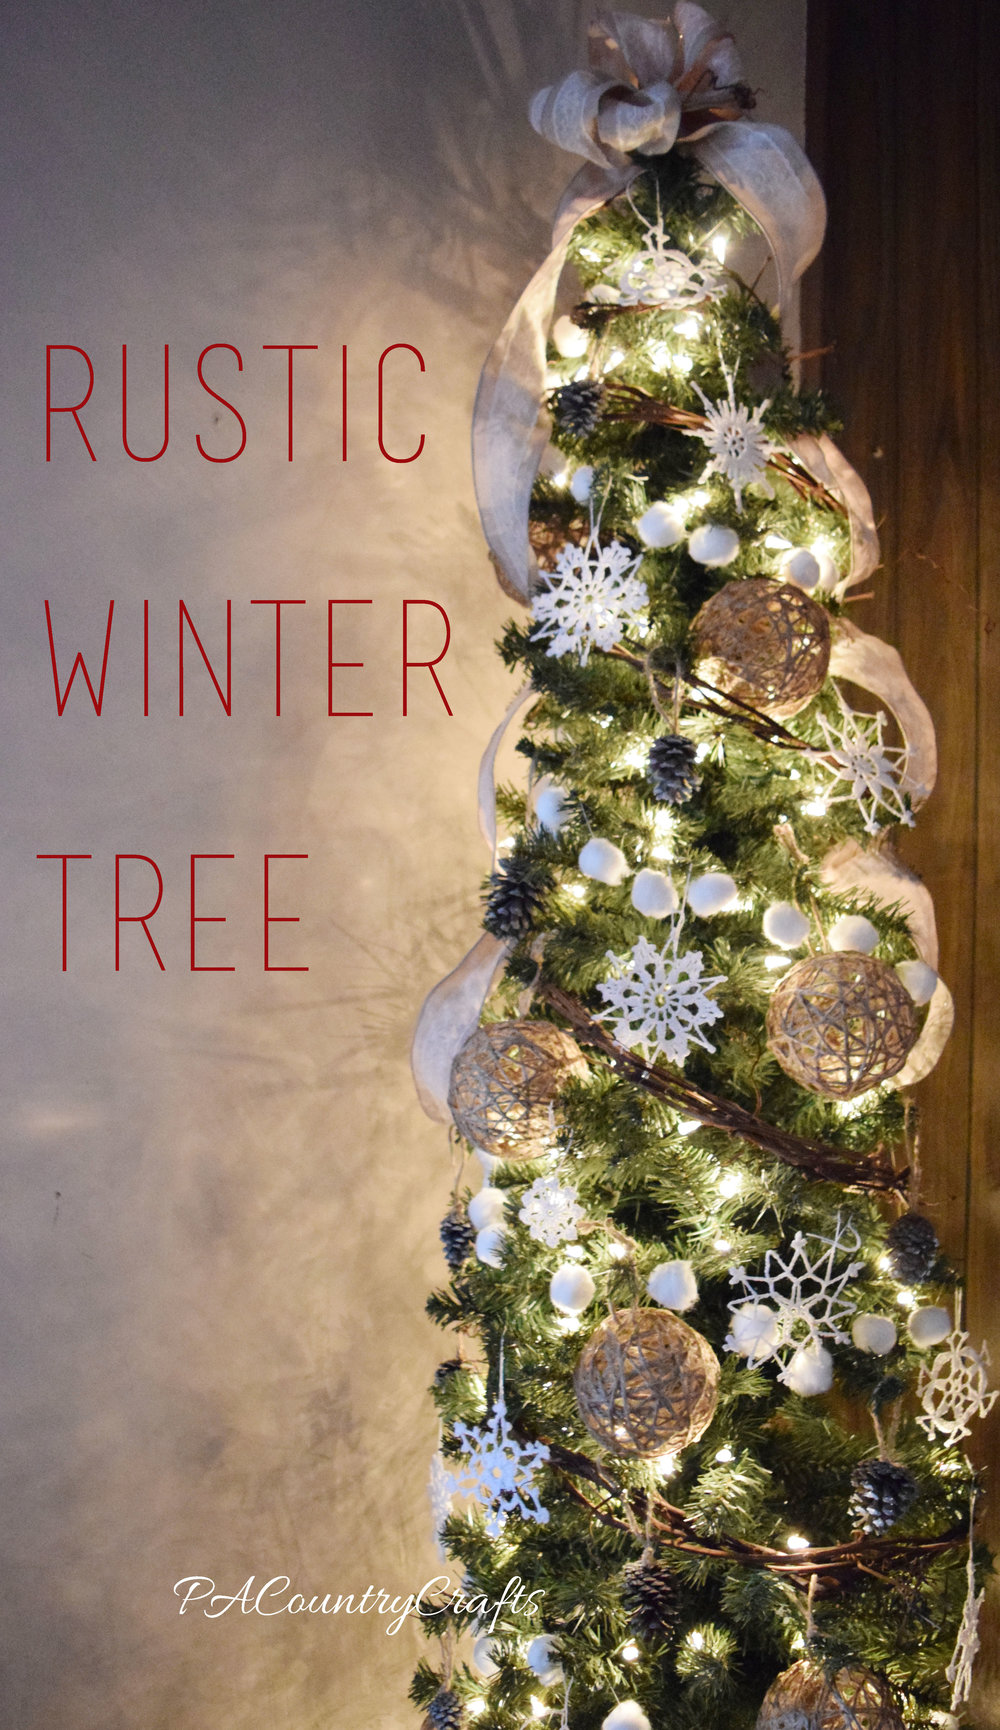 Rustic Winter Tree